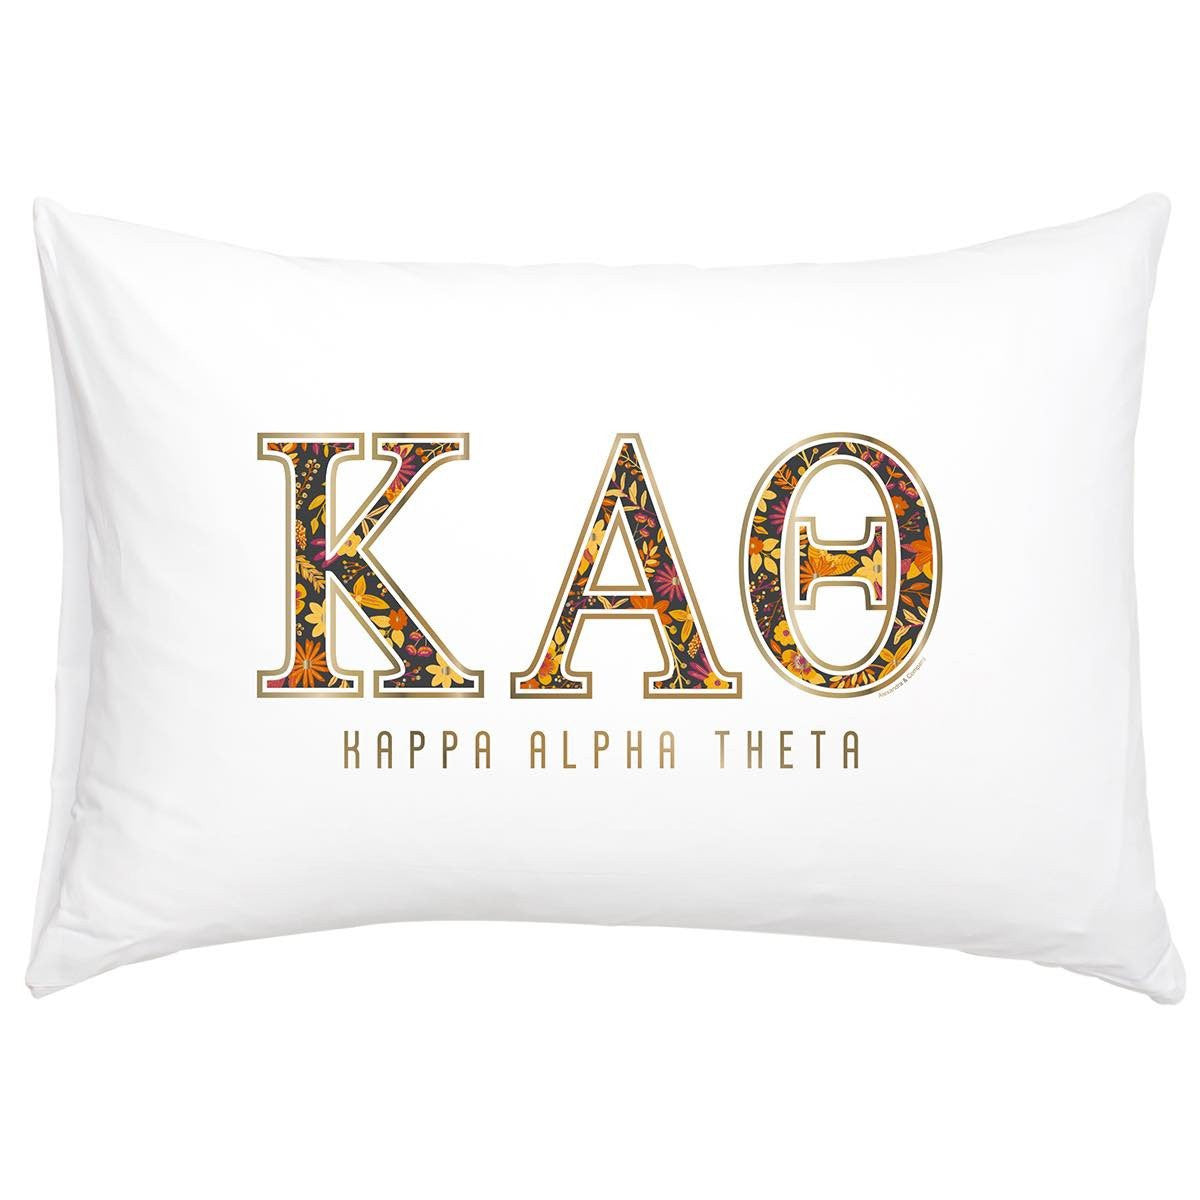 Kappa Alpha Theta Pillowcase with gold and floral print.